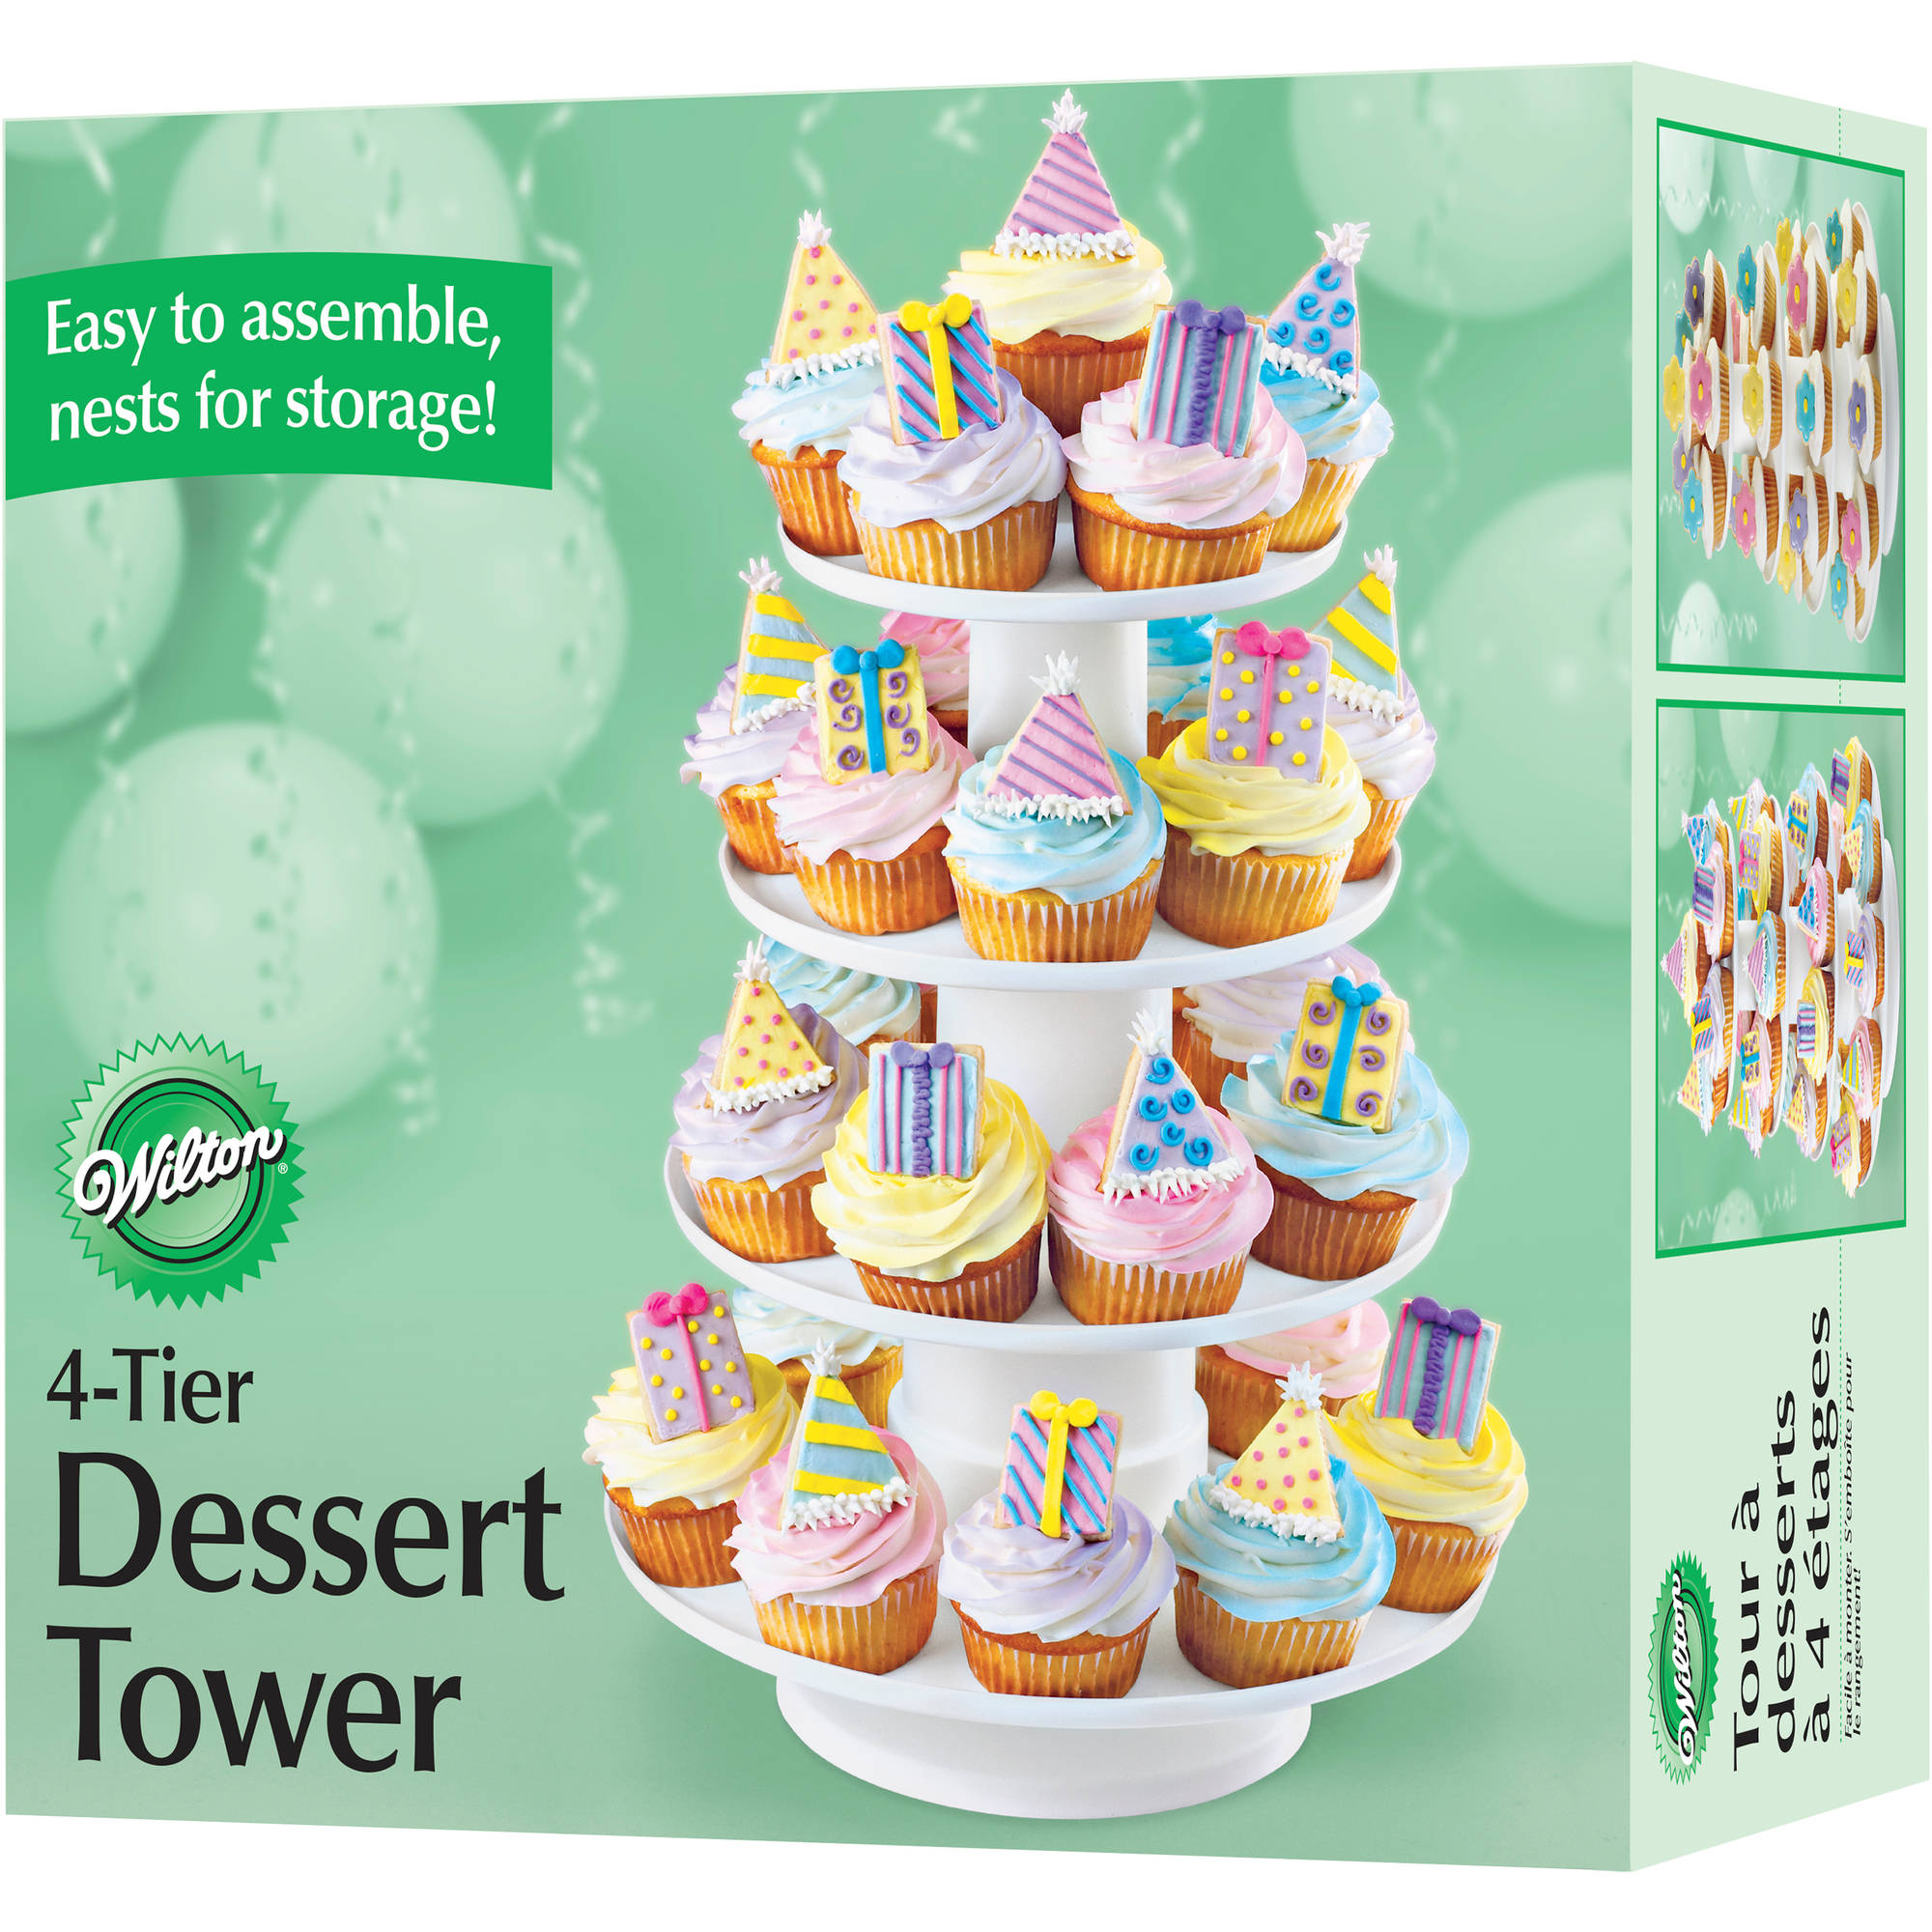 Wilton 4-Tier Dessert Tower, 36 ct. 307-856